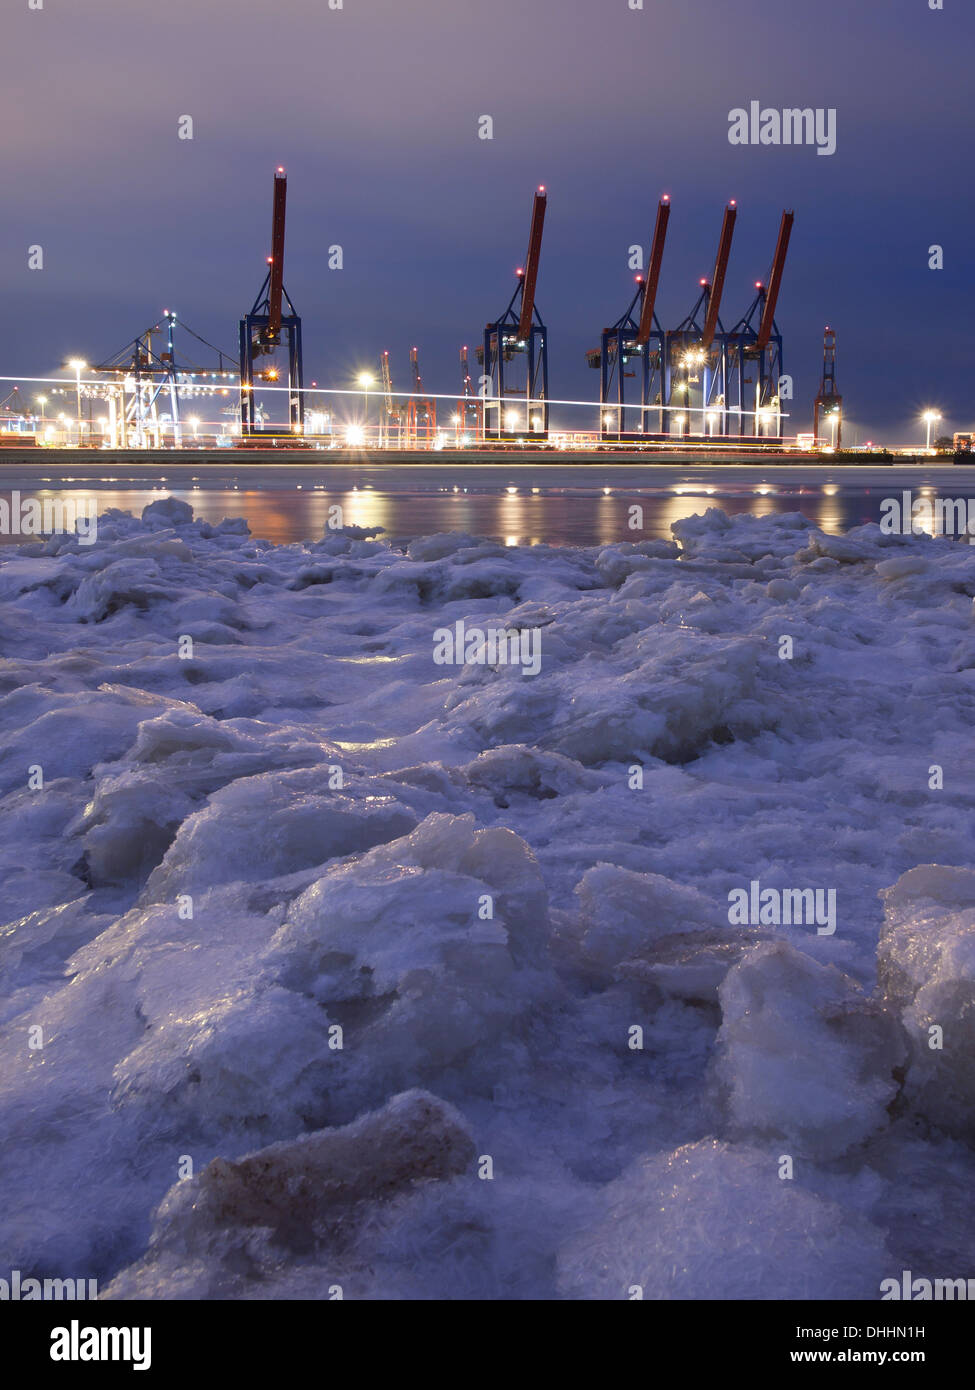 Frozen Elbe river with Waltershof container terminal in the evening, Hanseatic City of Hamburg, Germany, Europe - Stock Image